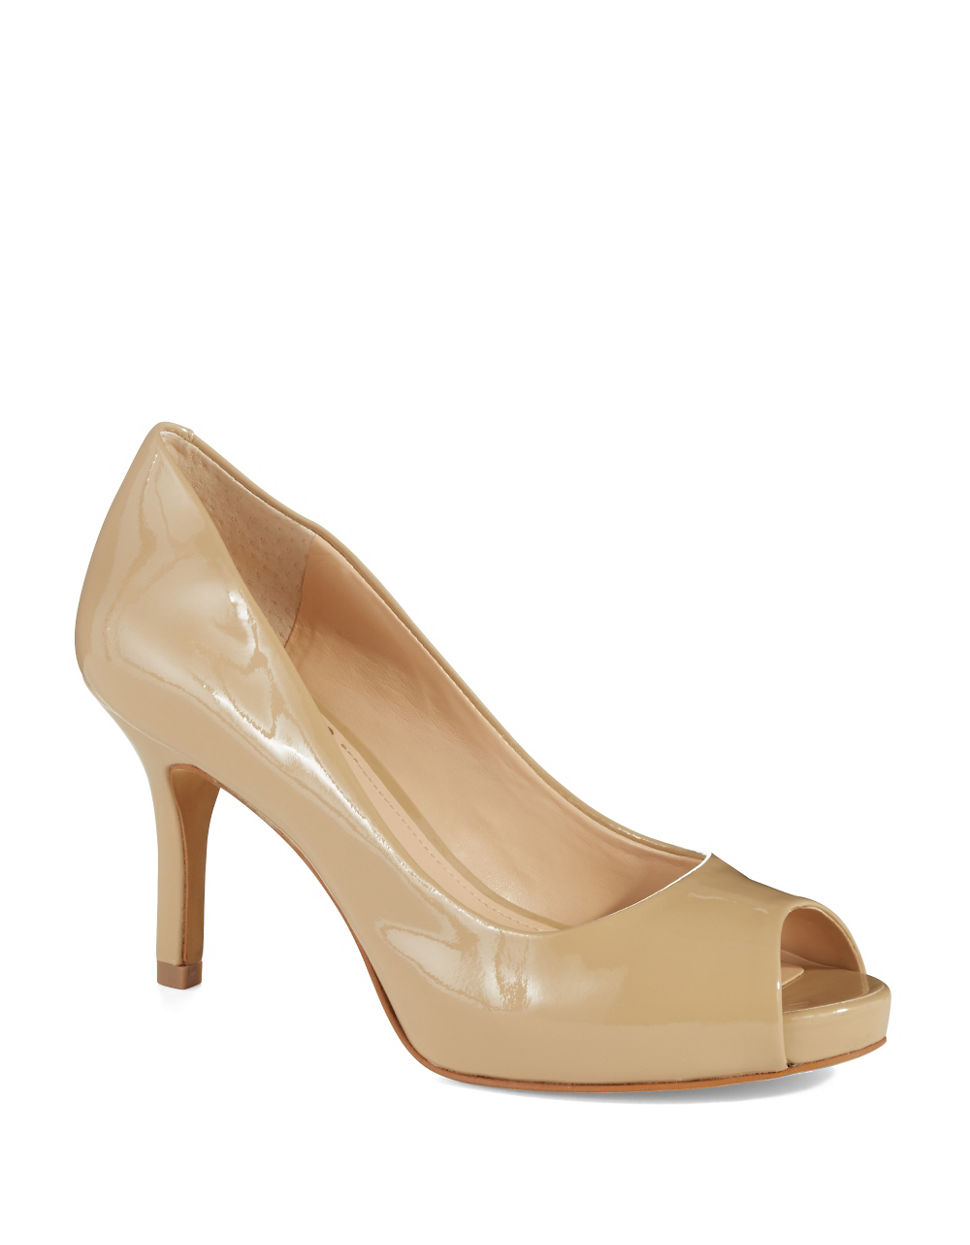 Lyst Vince Camuto Kiley Patent Leather Pumps In Natural